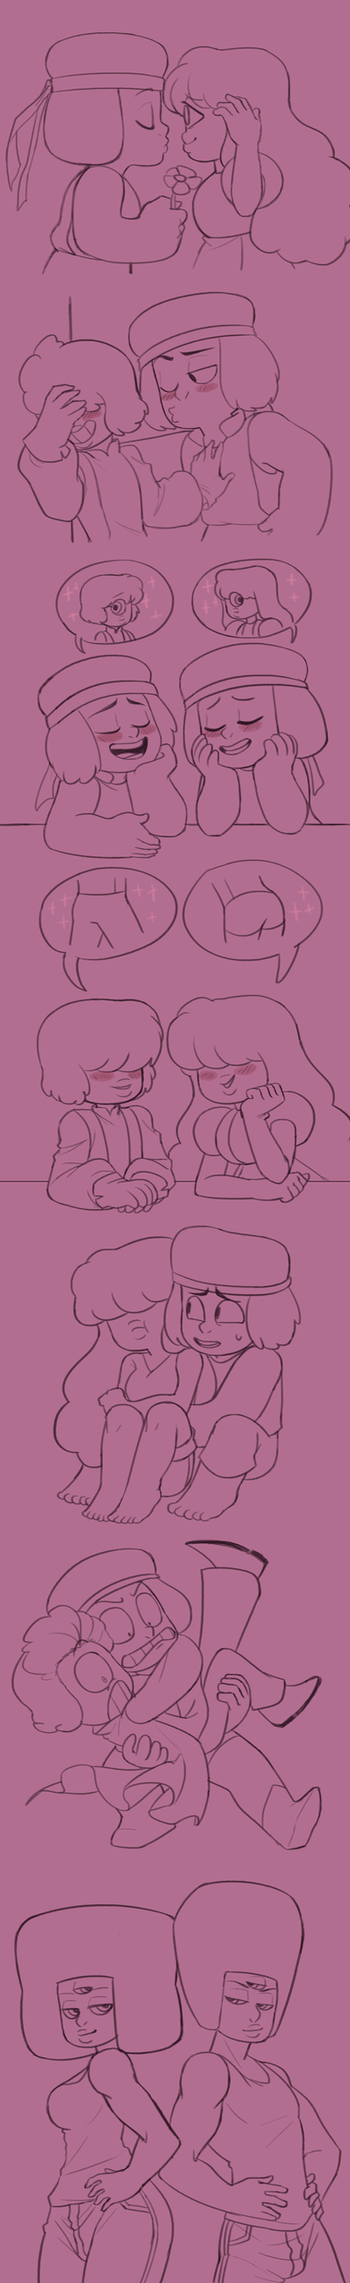 RxS doods by AllforCartoons